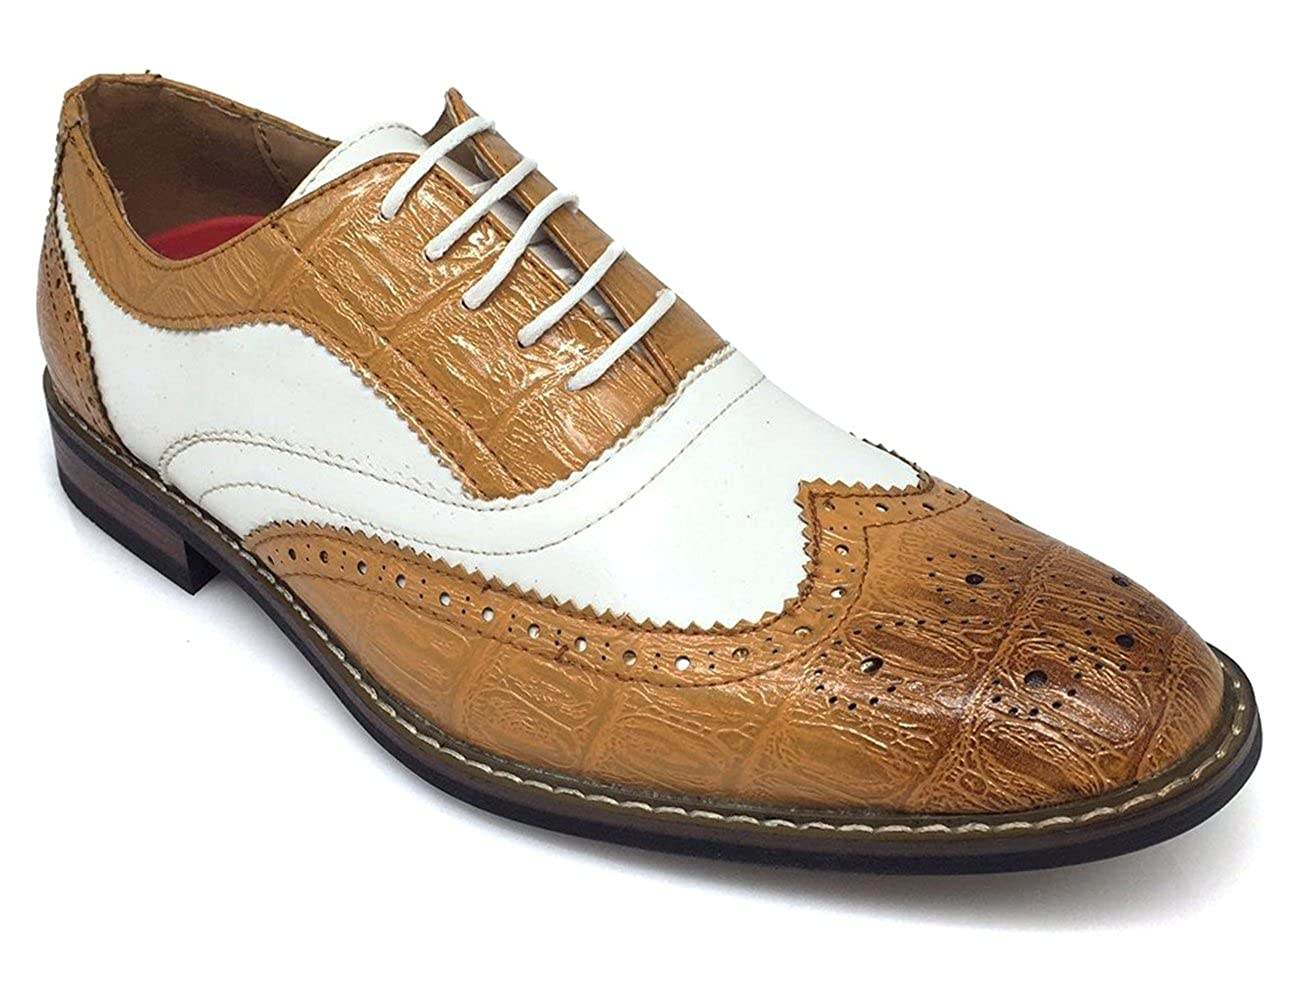 AC3D Mens Oxfords Shoes Wing Tip Lace up Two-Tone Alligator Print Leather Lined Brogue Casual Dress